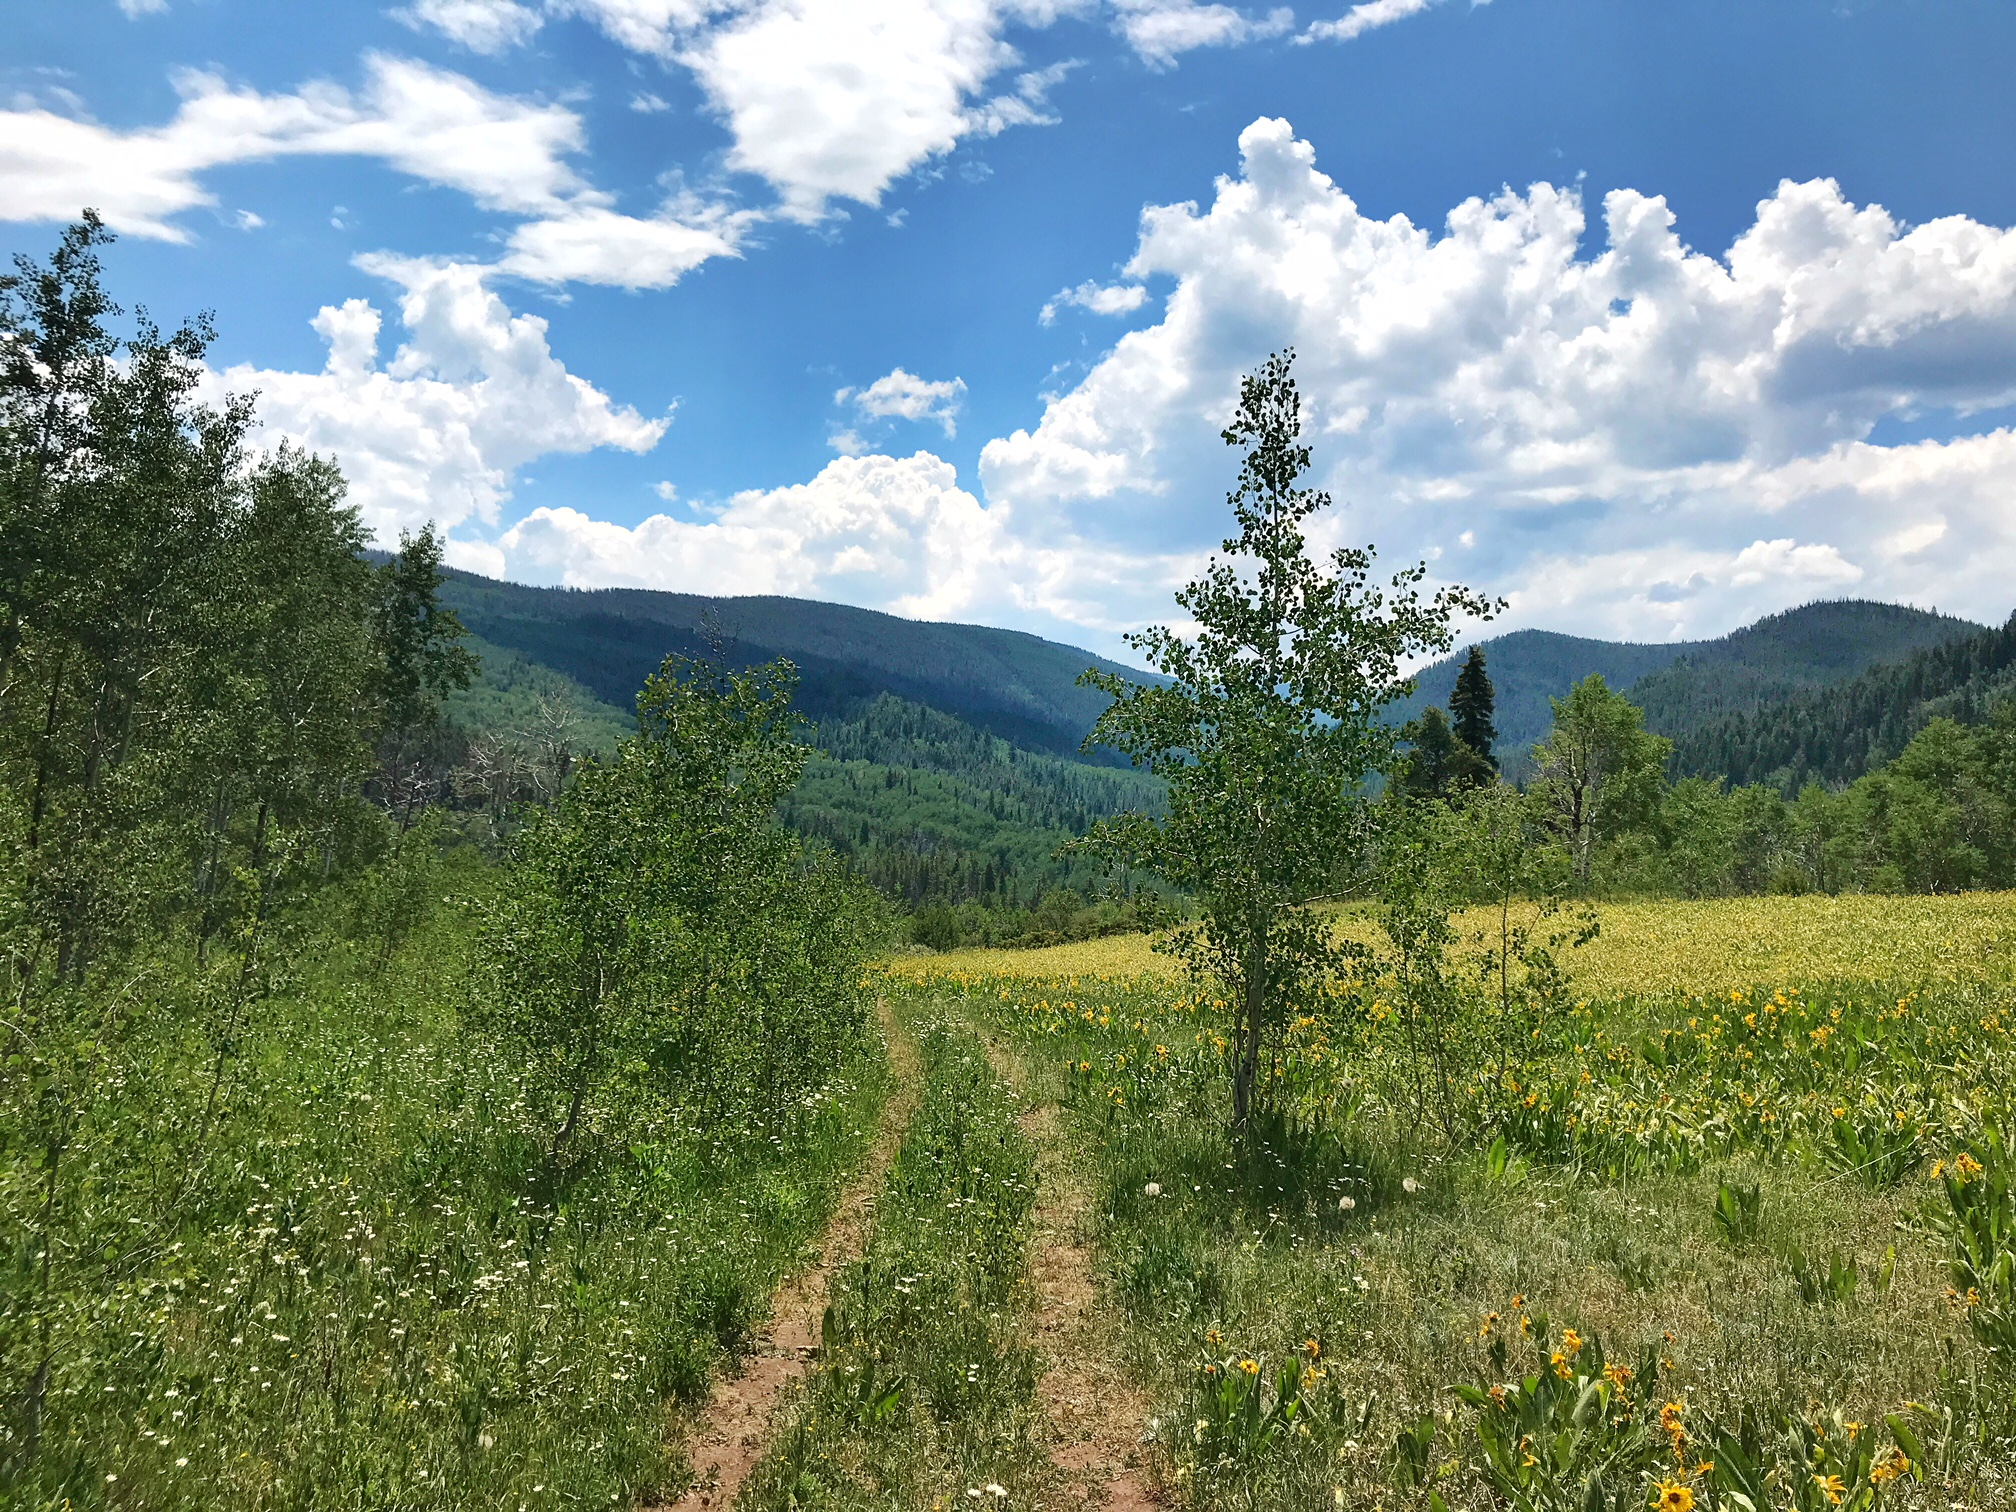 A summery snapshot from a hike up in Edwards, CO.